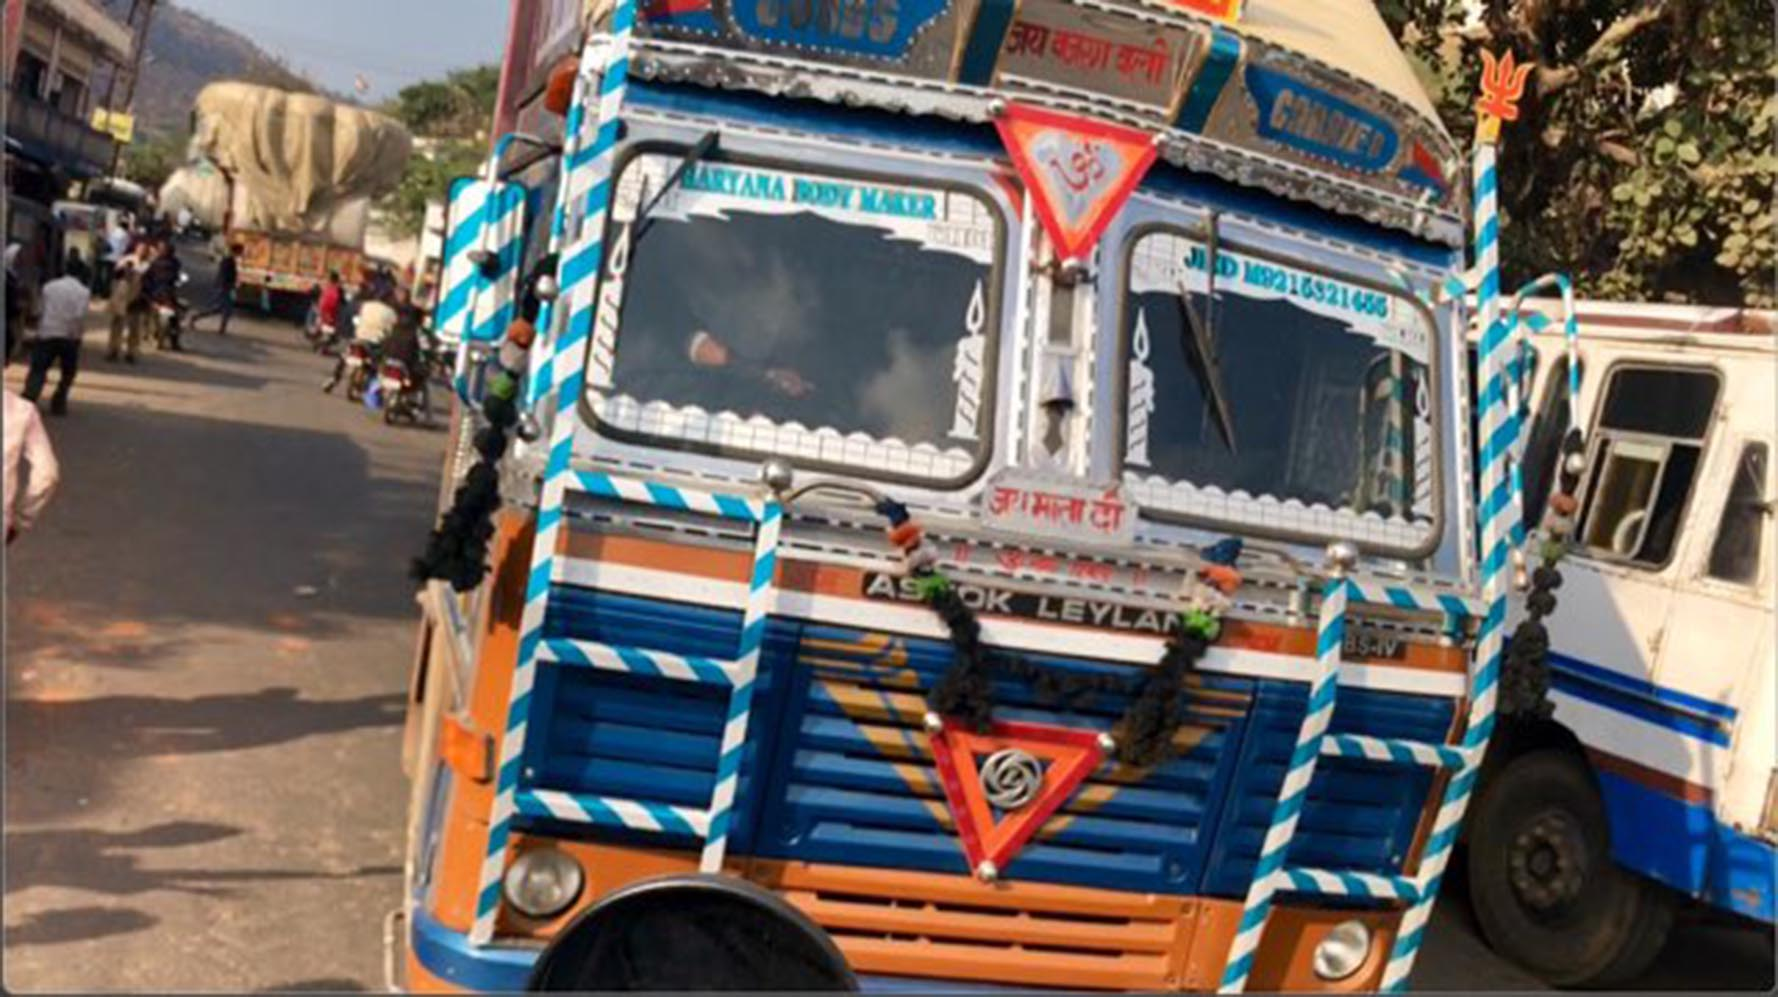 Colorful bus in Rajasthan